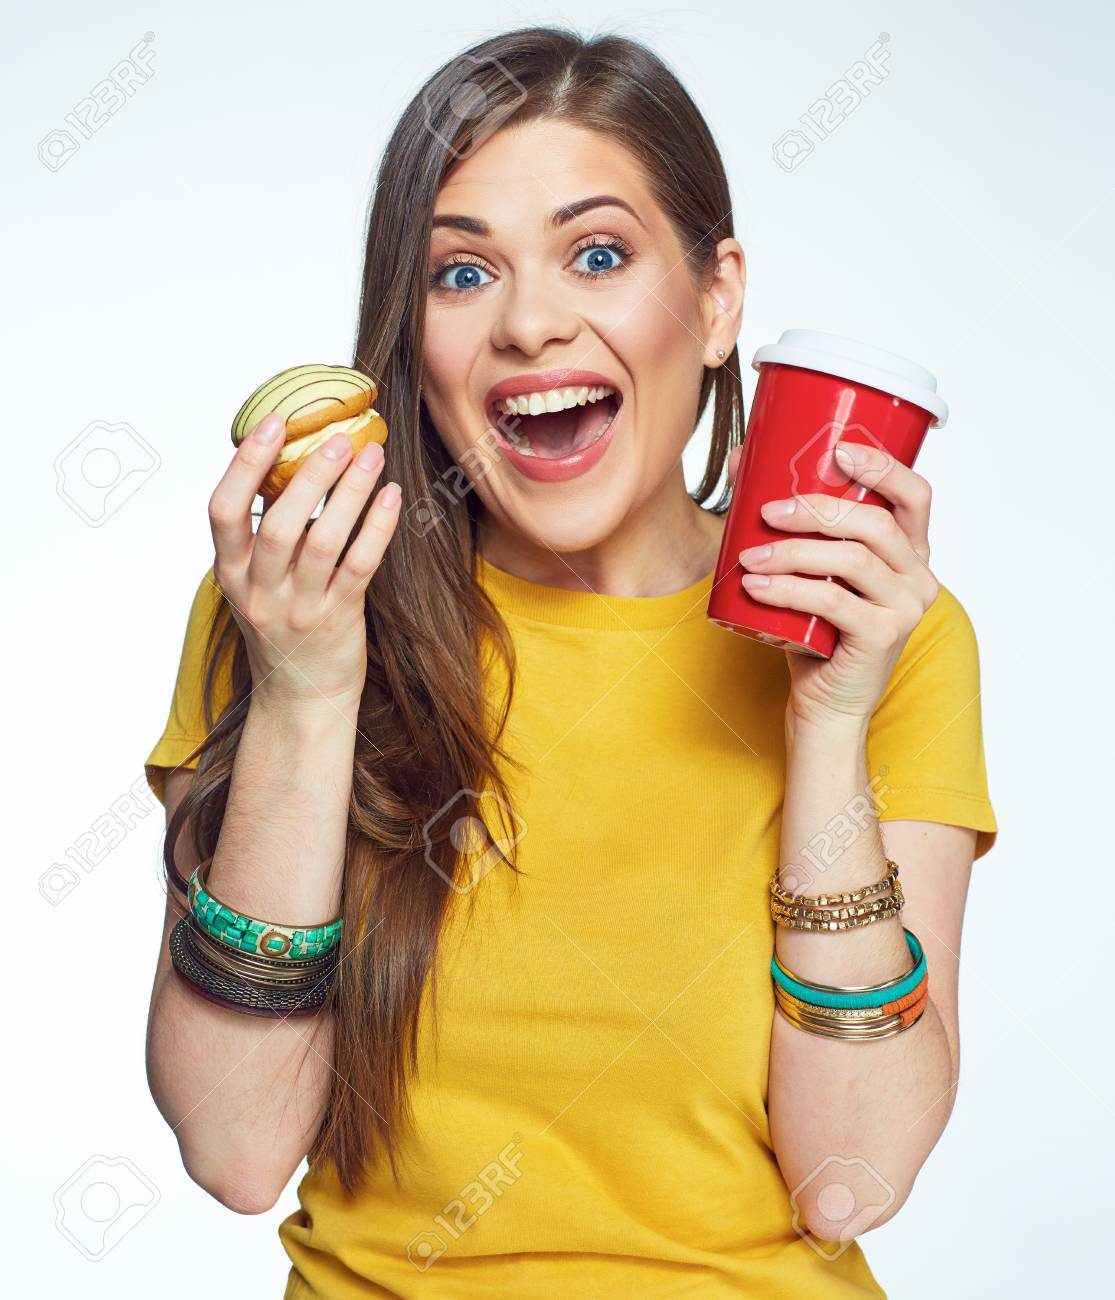 Happy Emotional Woman Glad Sweet Diet White Background Isolated 1115x1300